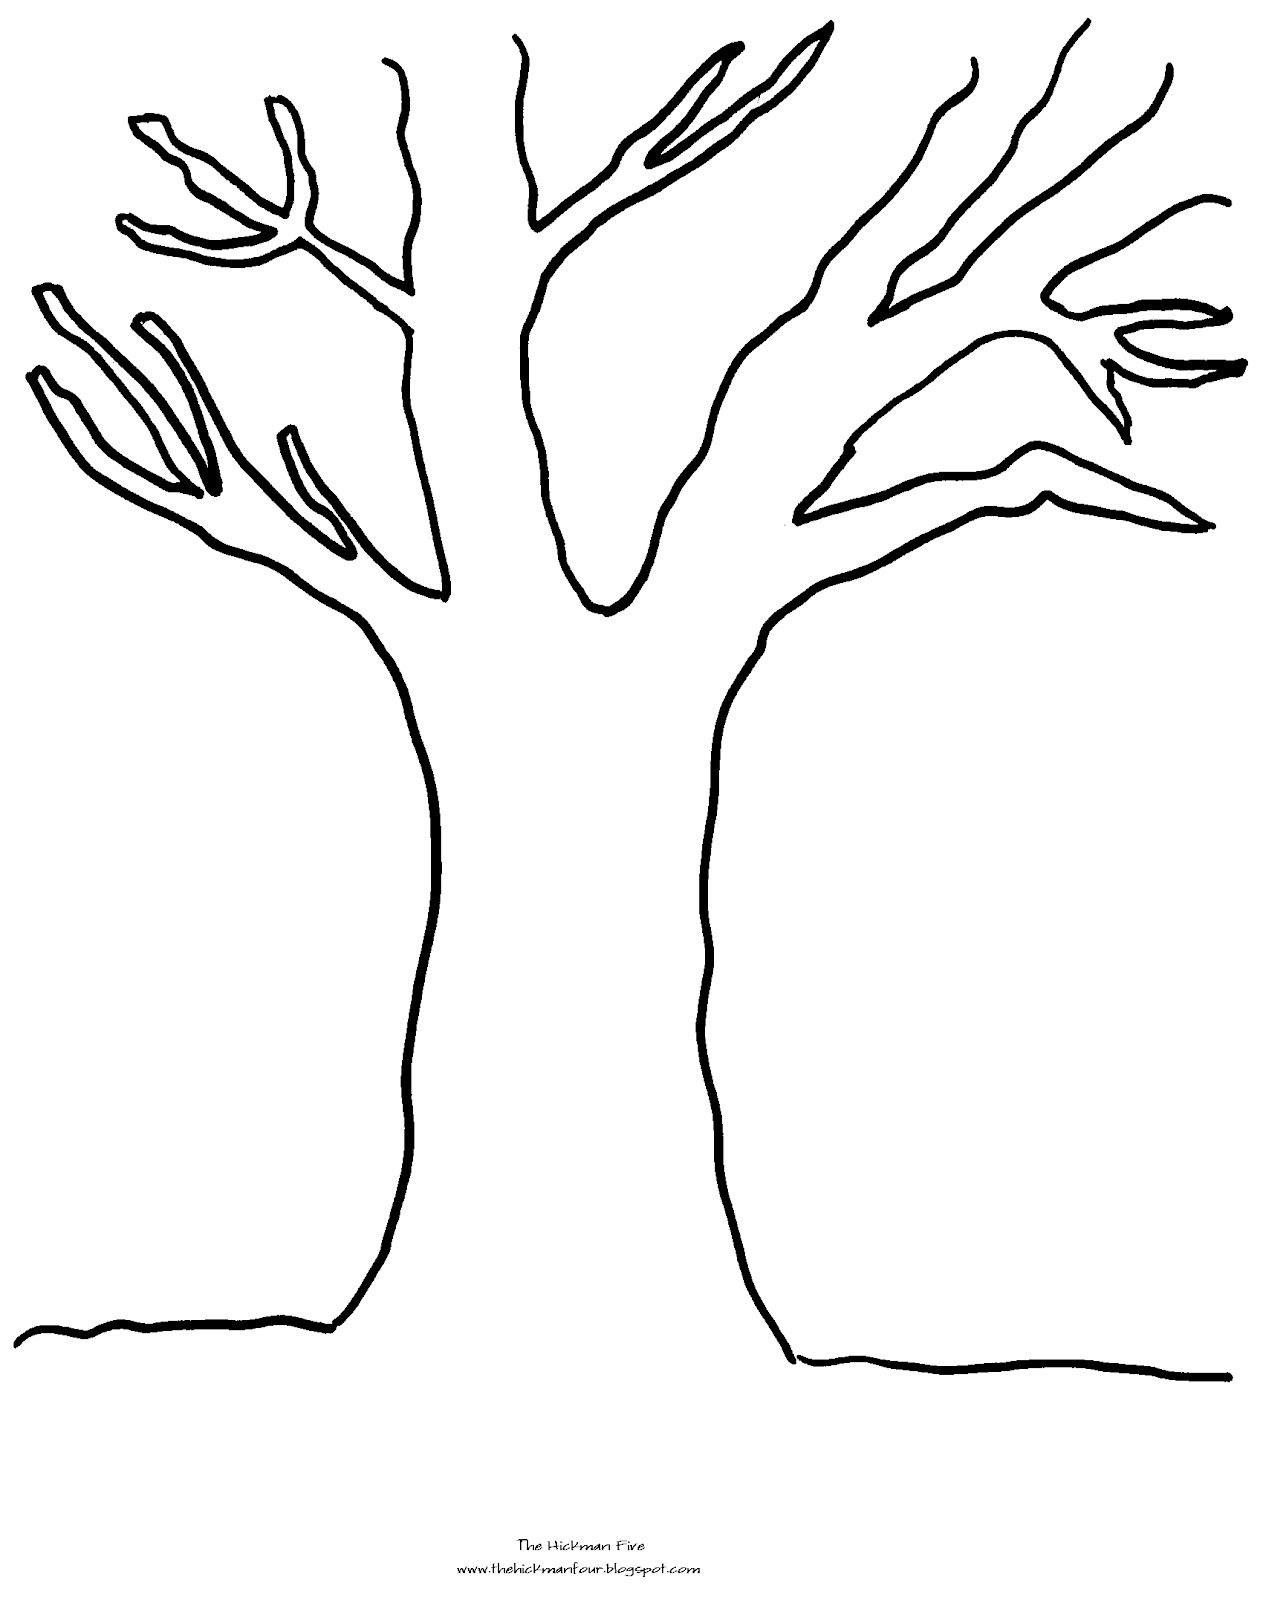 How To Color A Tree Branch Google Search Cartoon Trees